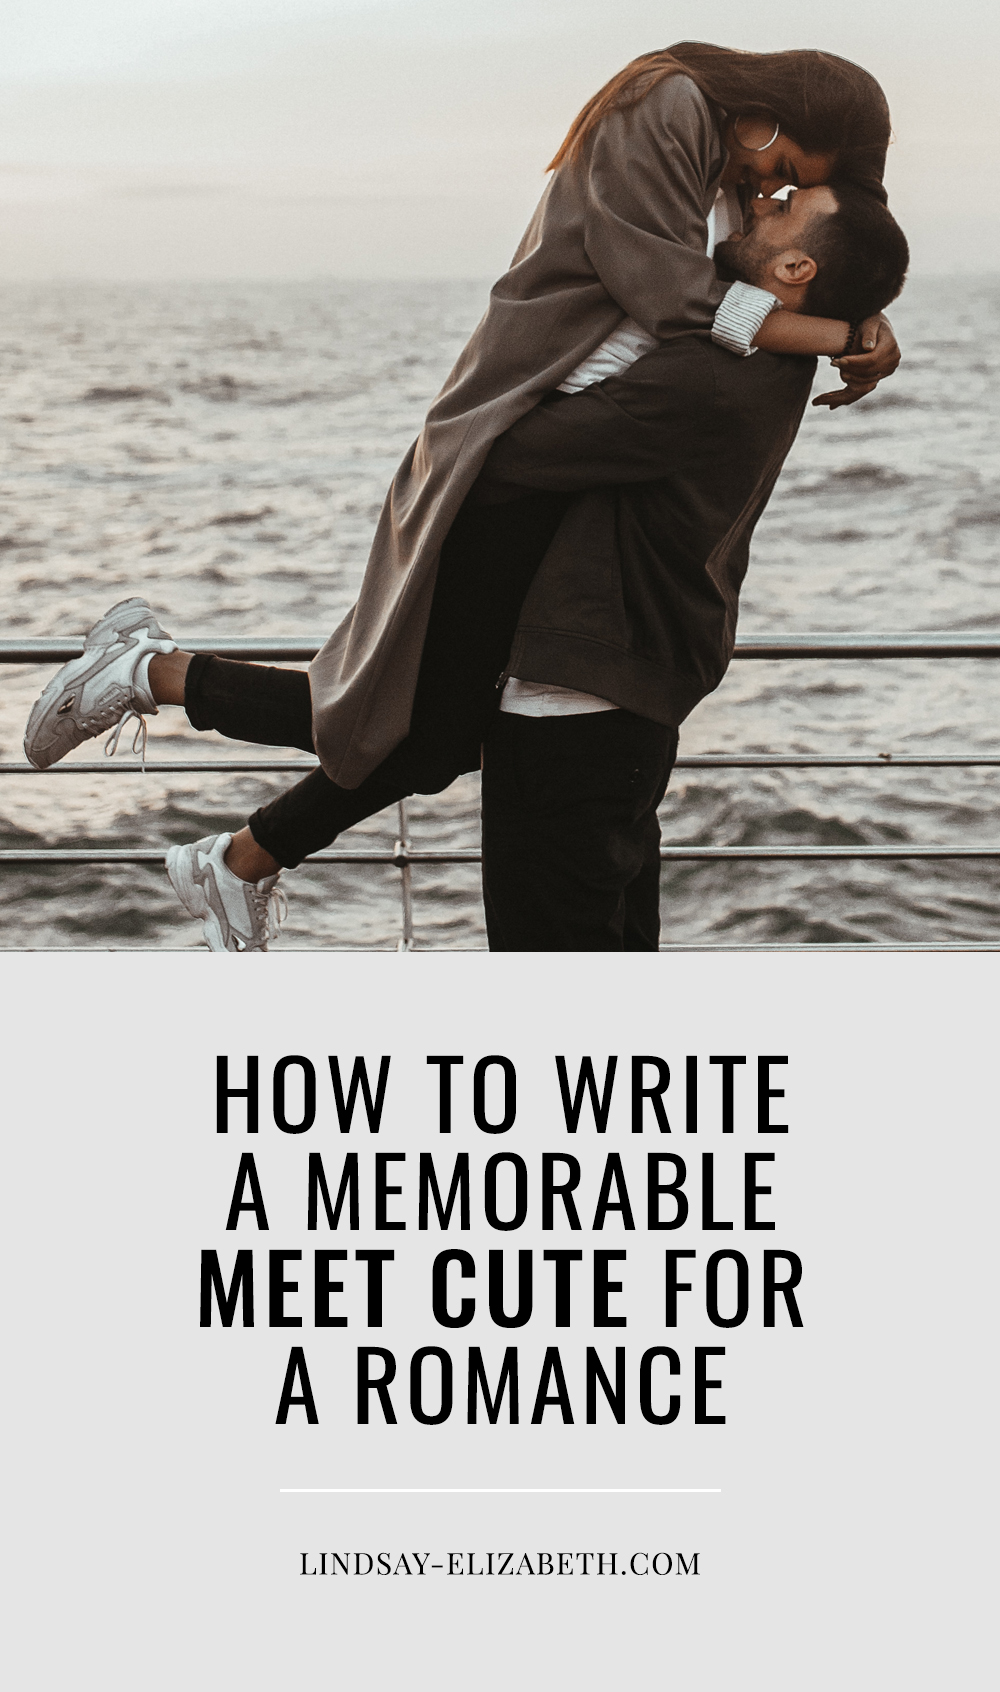 """It's the moment we all look forward to in a love story: when the lovers first meet. In Hollywood, it's called the """"meet cute."""" If it falls flat, there's a good chance your readers will emotionally checkout. Here are some tips on how to write a meet cute for a romance that will pull readers in and set them up to fall in love with the pairing. #writingtips #writingadvice #romancenovels #lovestories #writers #authors"""